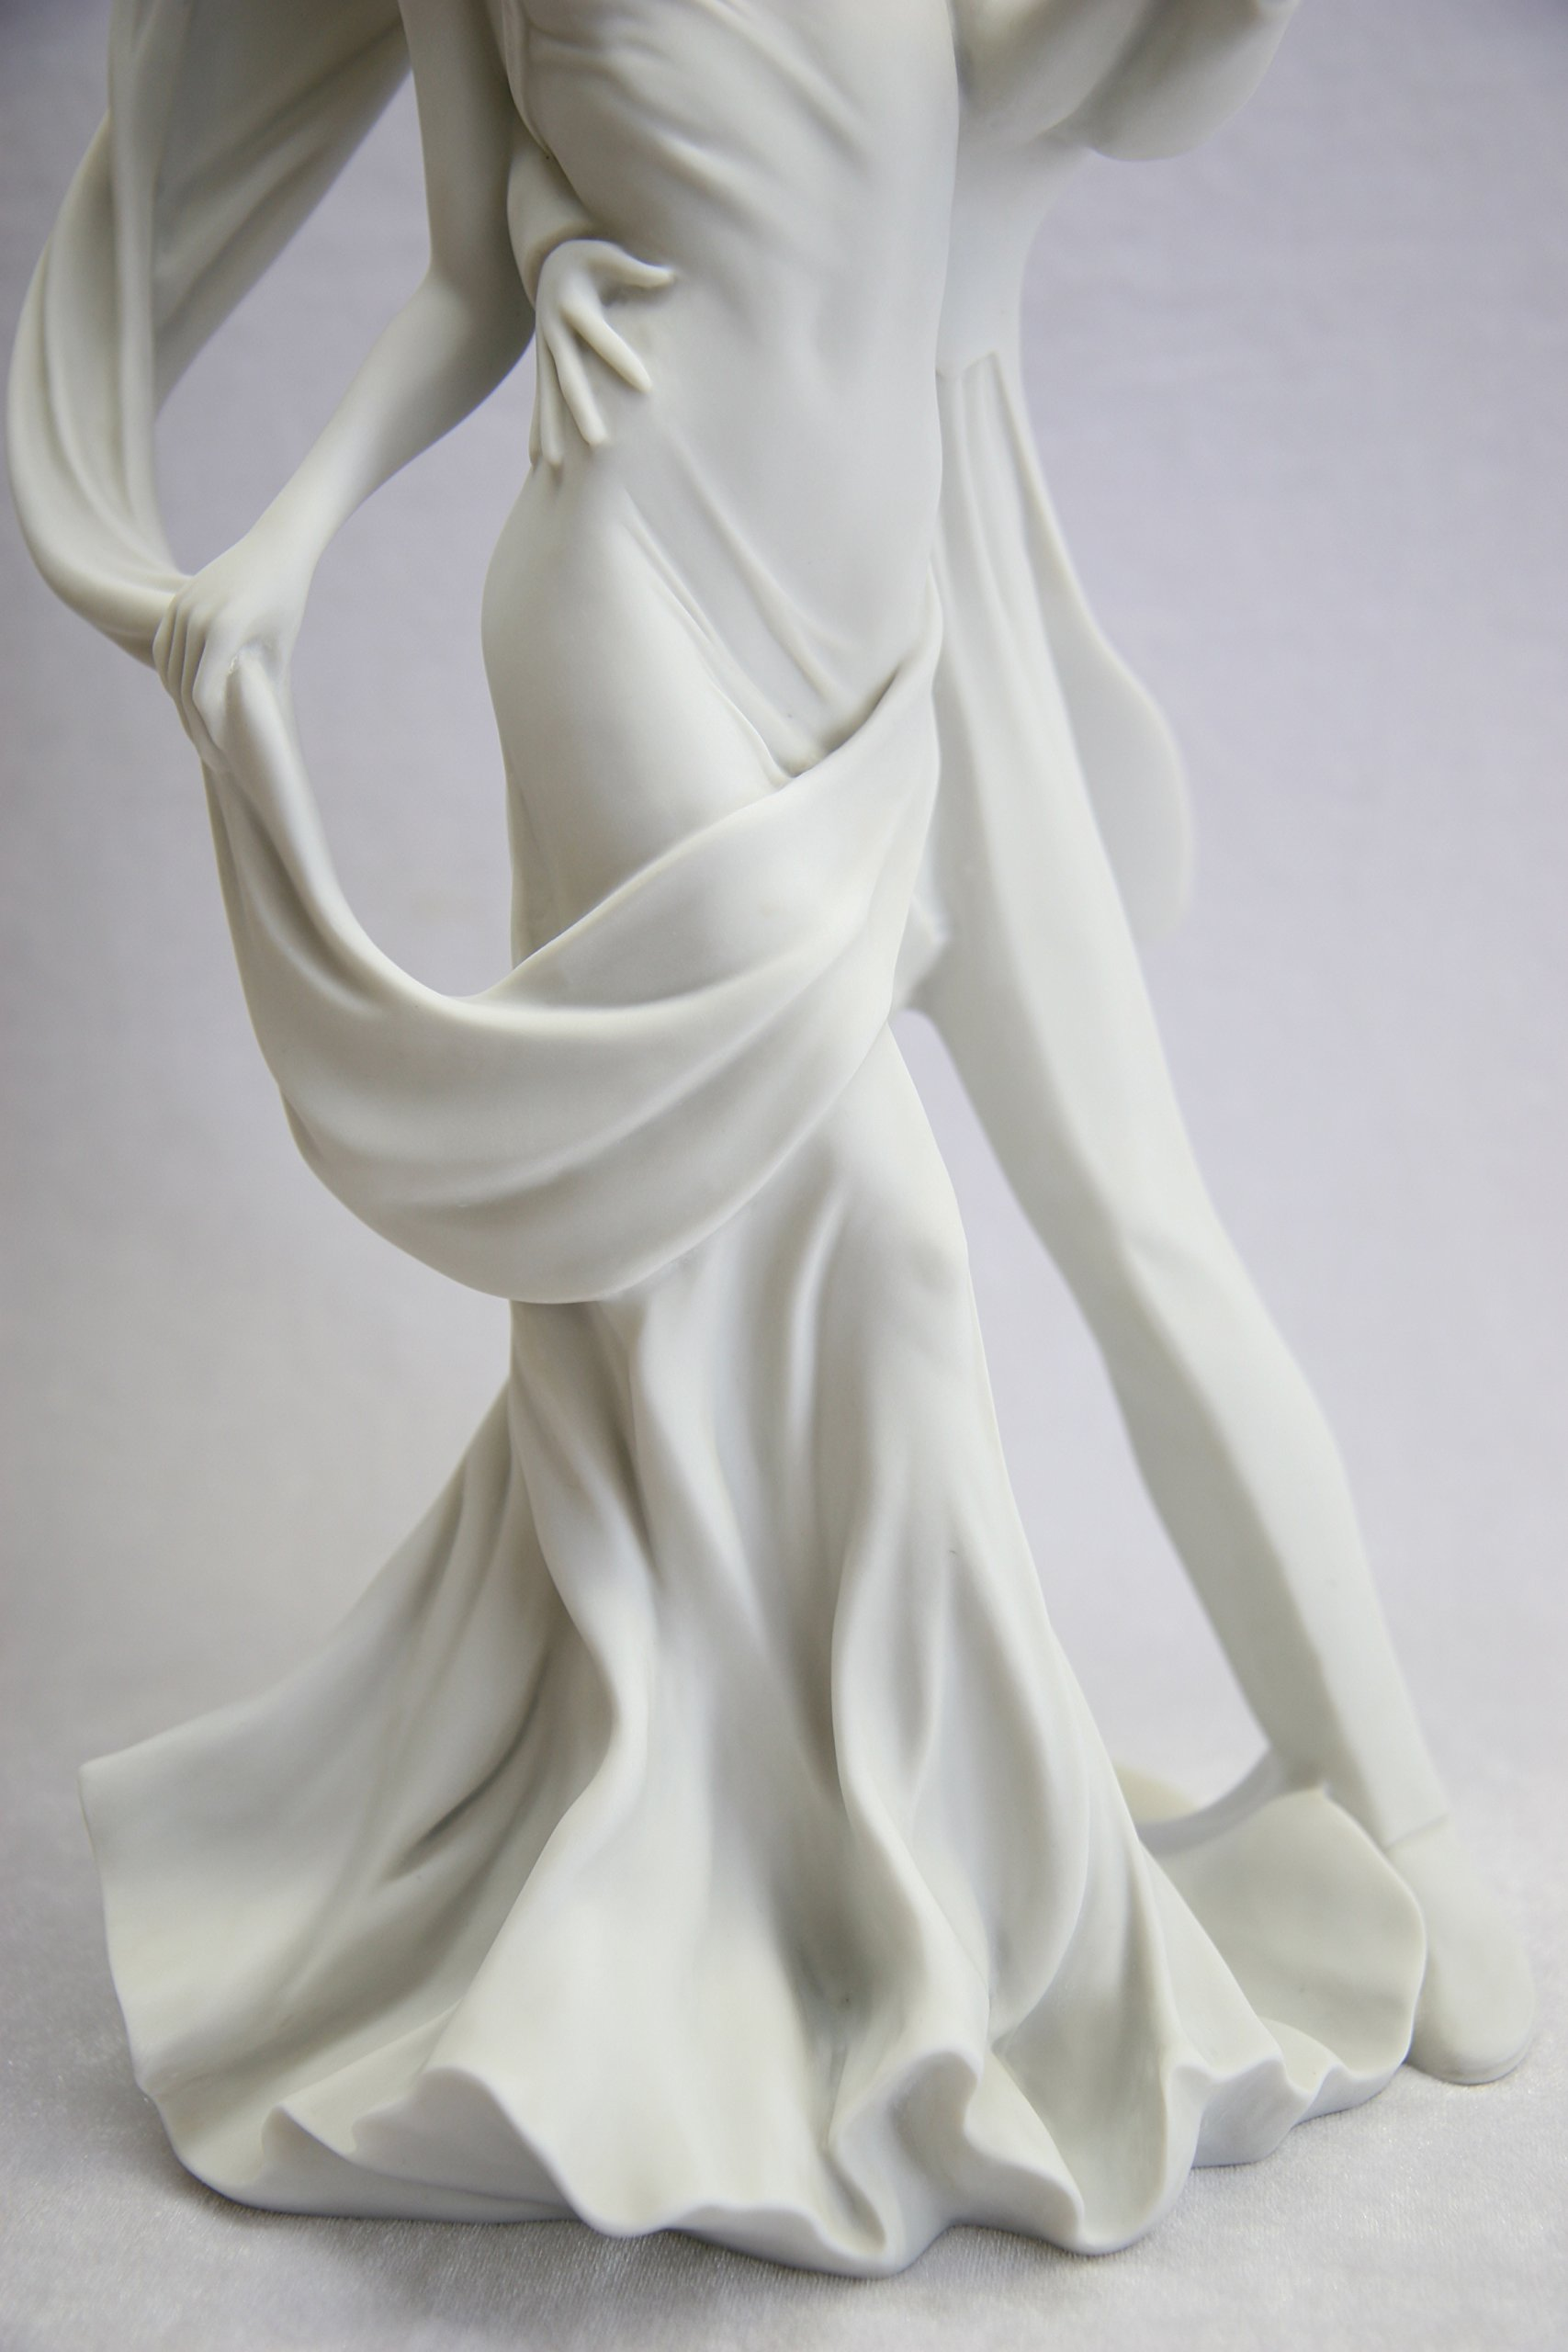 15.5'' Romantic Couple of Dancer Dance Statue Sculpture Figurine By Vittoria Collection Made in Italy by Vittoria Collection (Image #7)